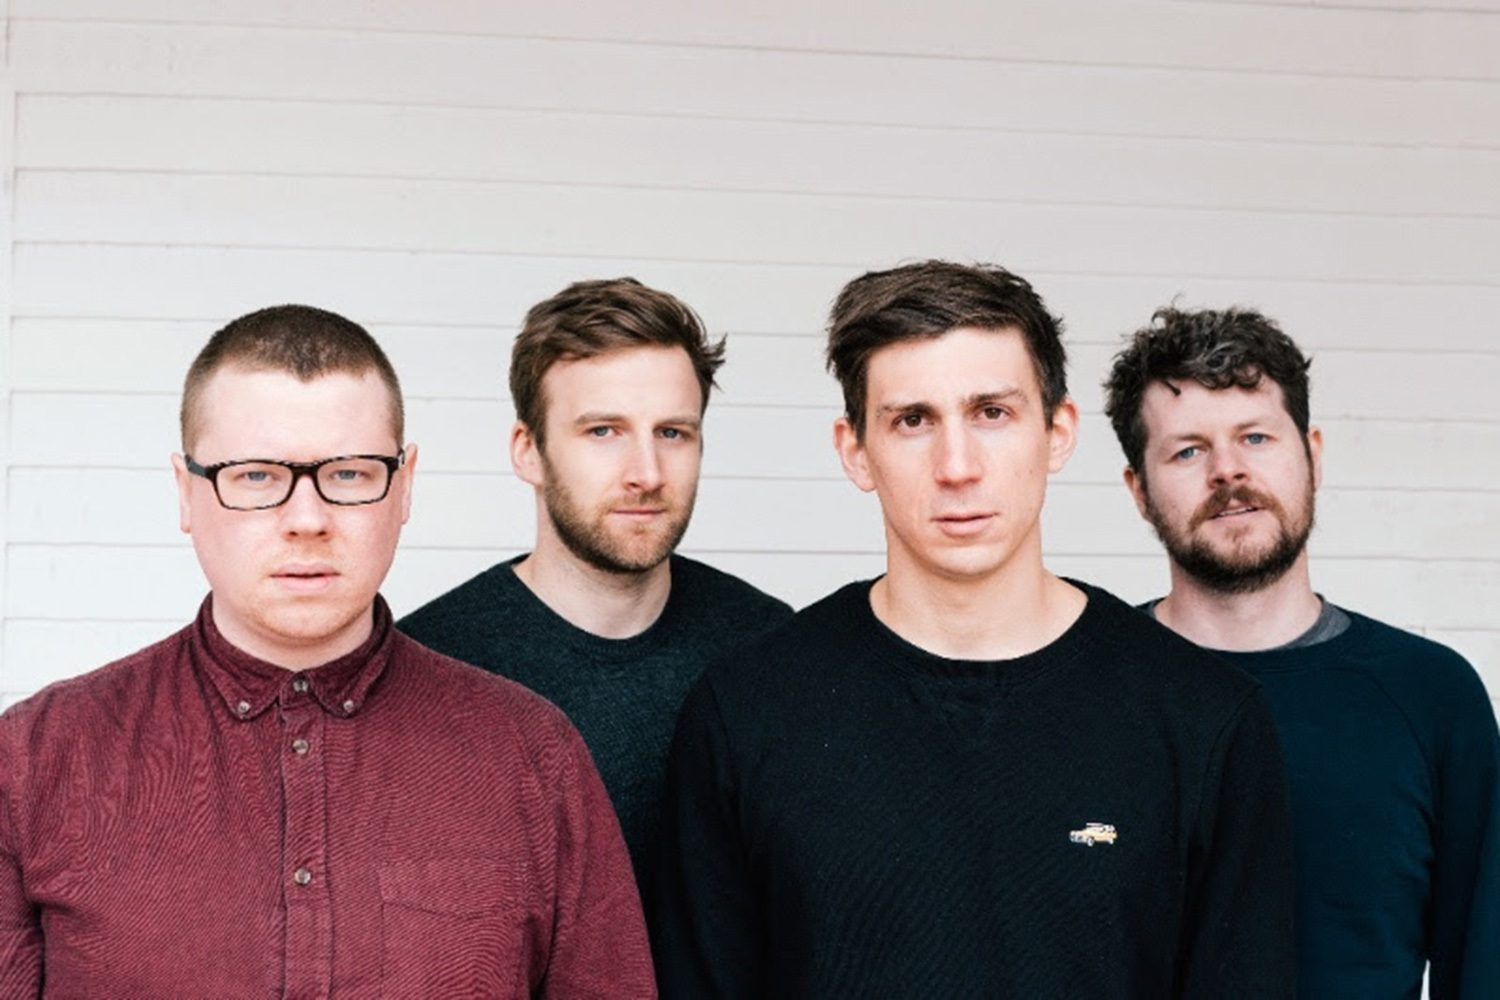 We Were Promised Jetpacks have released their first album in four years